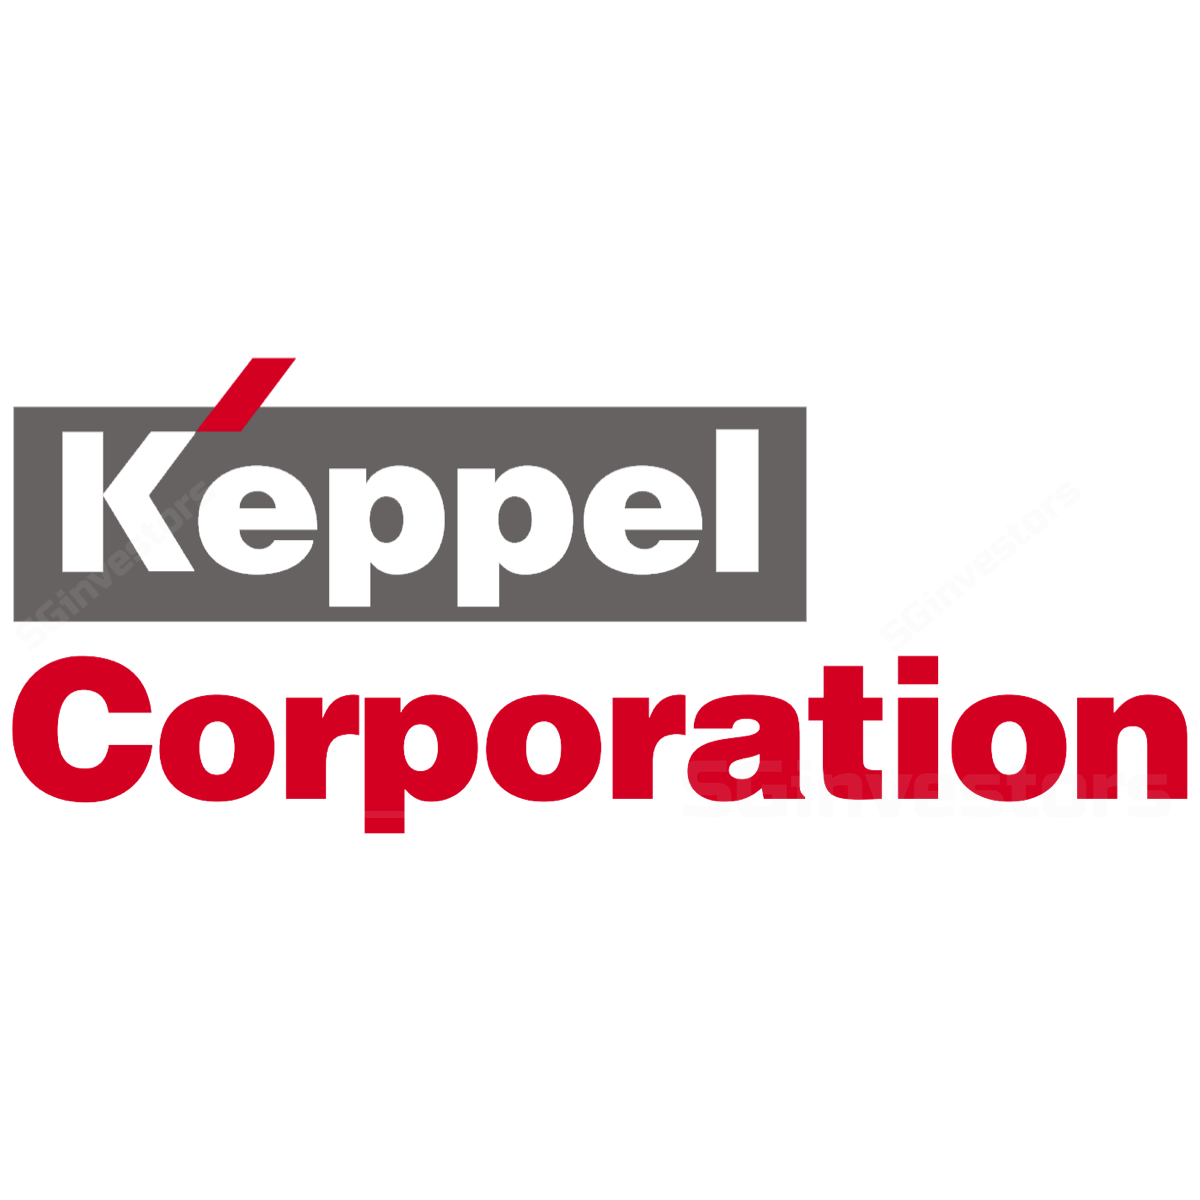 Keppel Corporation - CIMB Research 2018-04-02: Divestment Gain To Boost 1Q18 Earnings